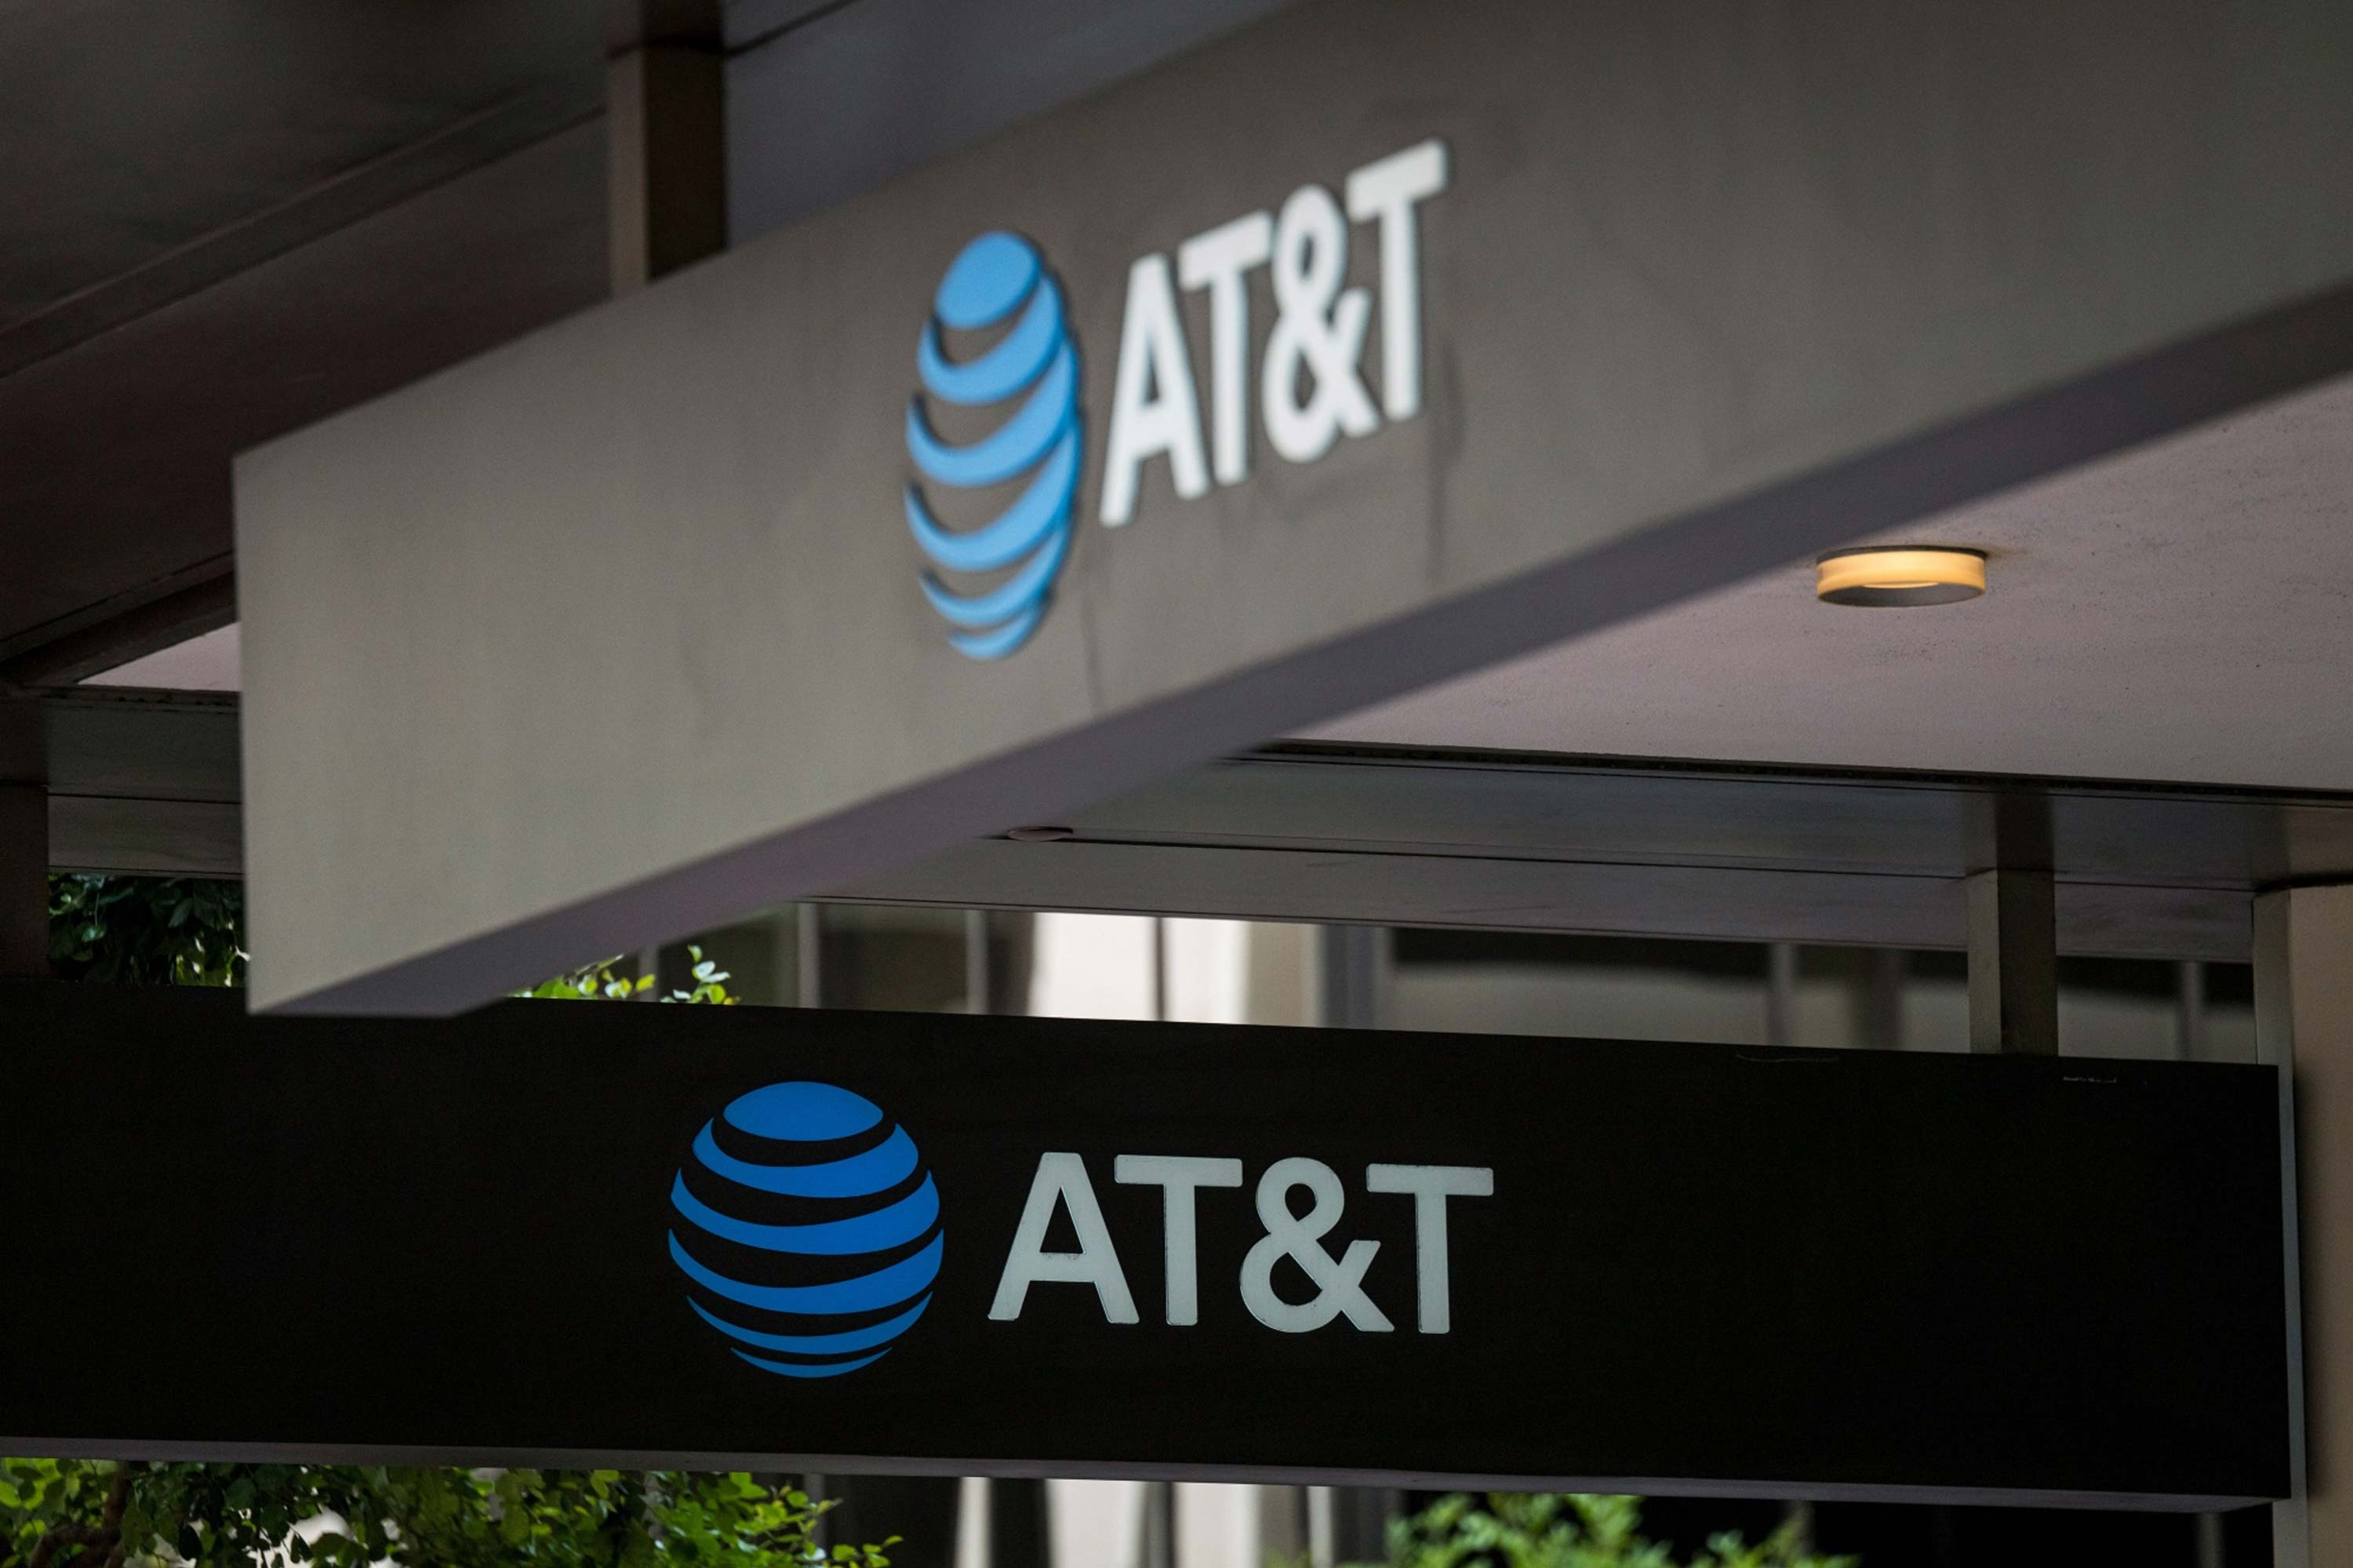 AT&T weighs ad retreat, exploring sale of Xandr unit, WSJ says